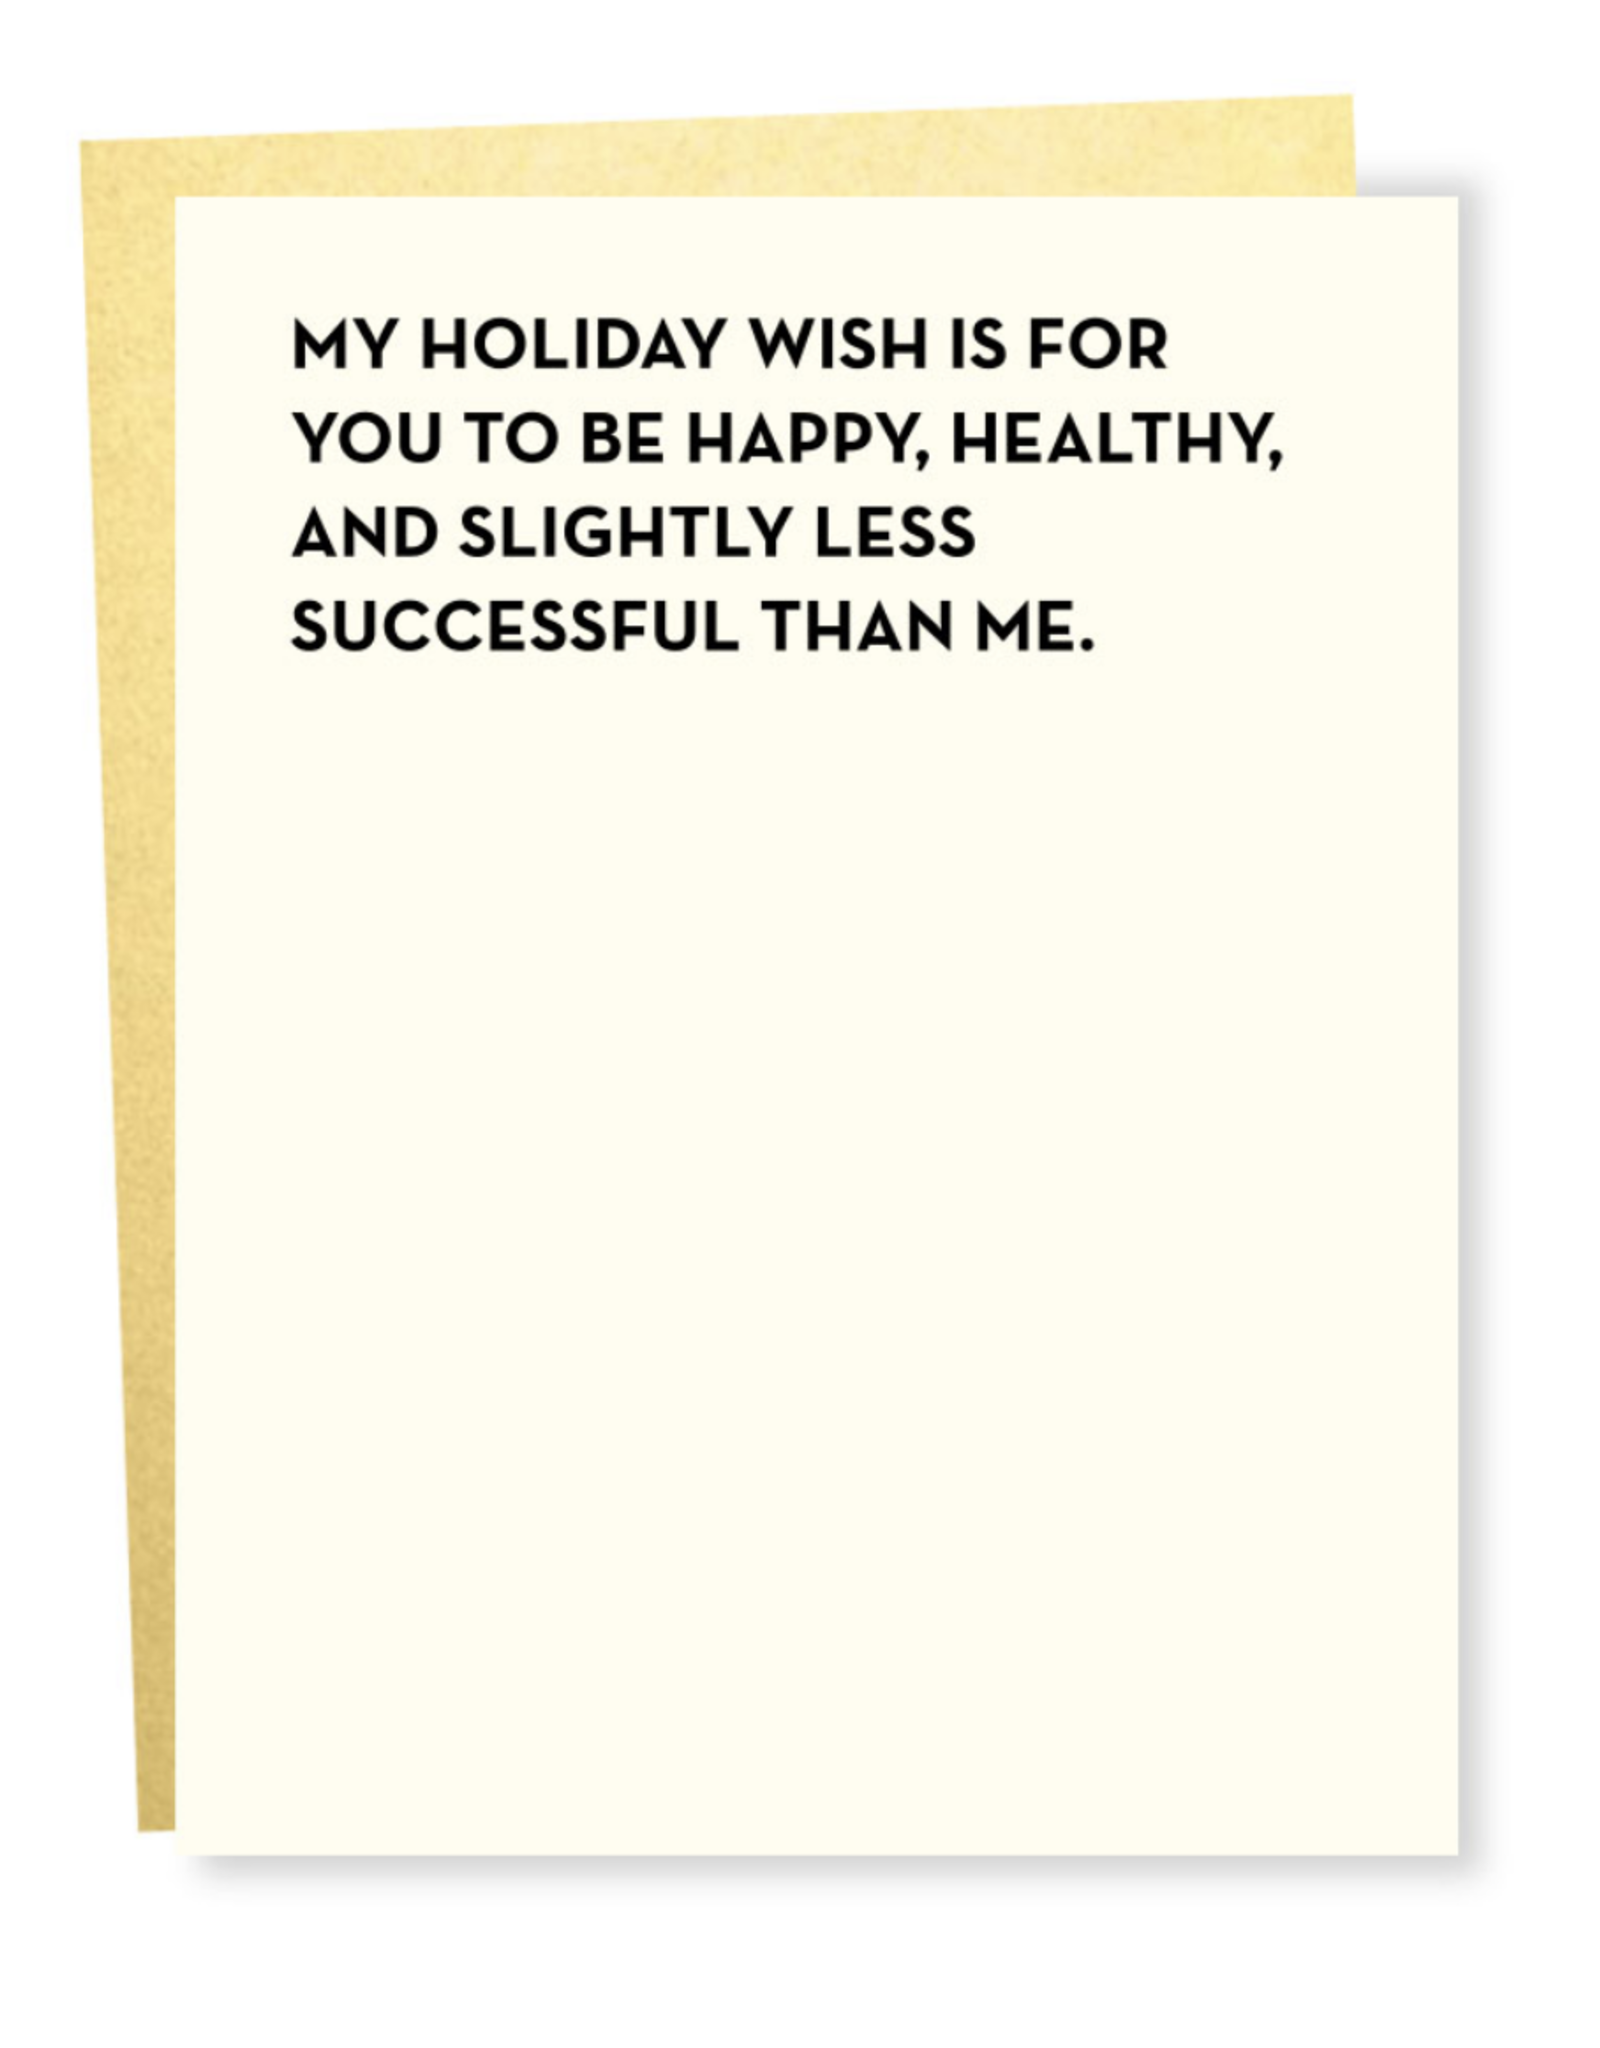 My Holiday Wish Is For You To Be... Greeting Card